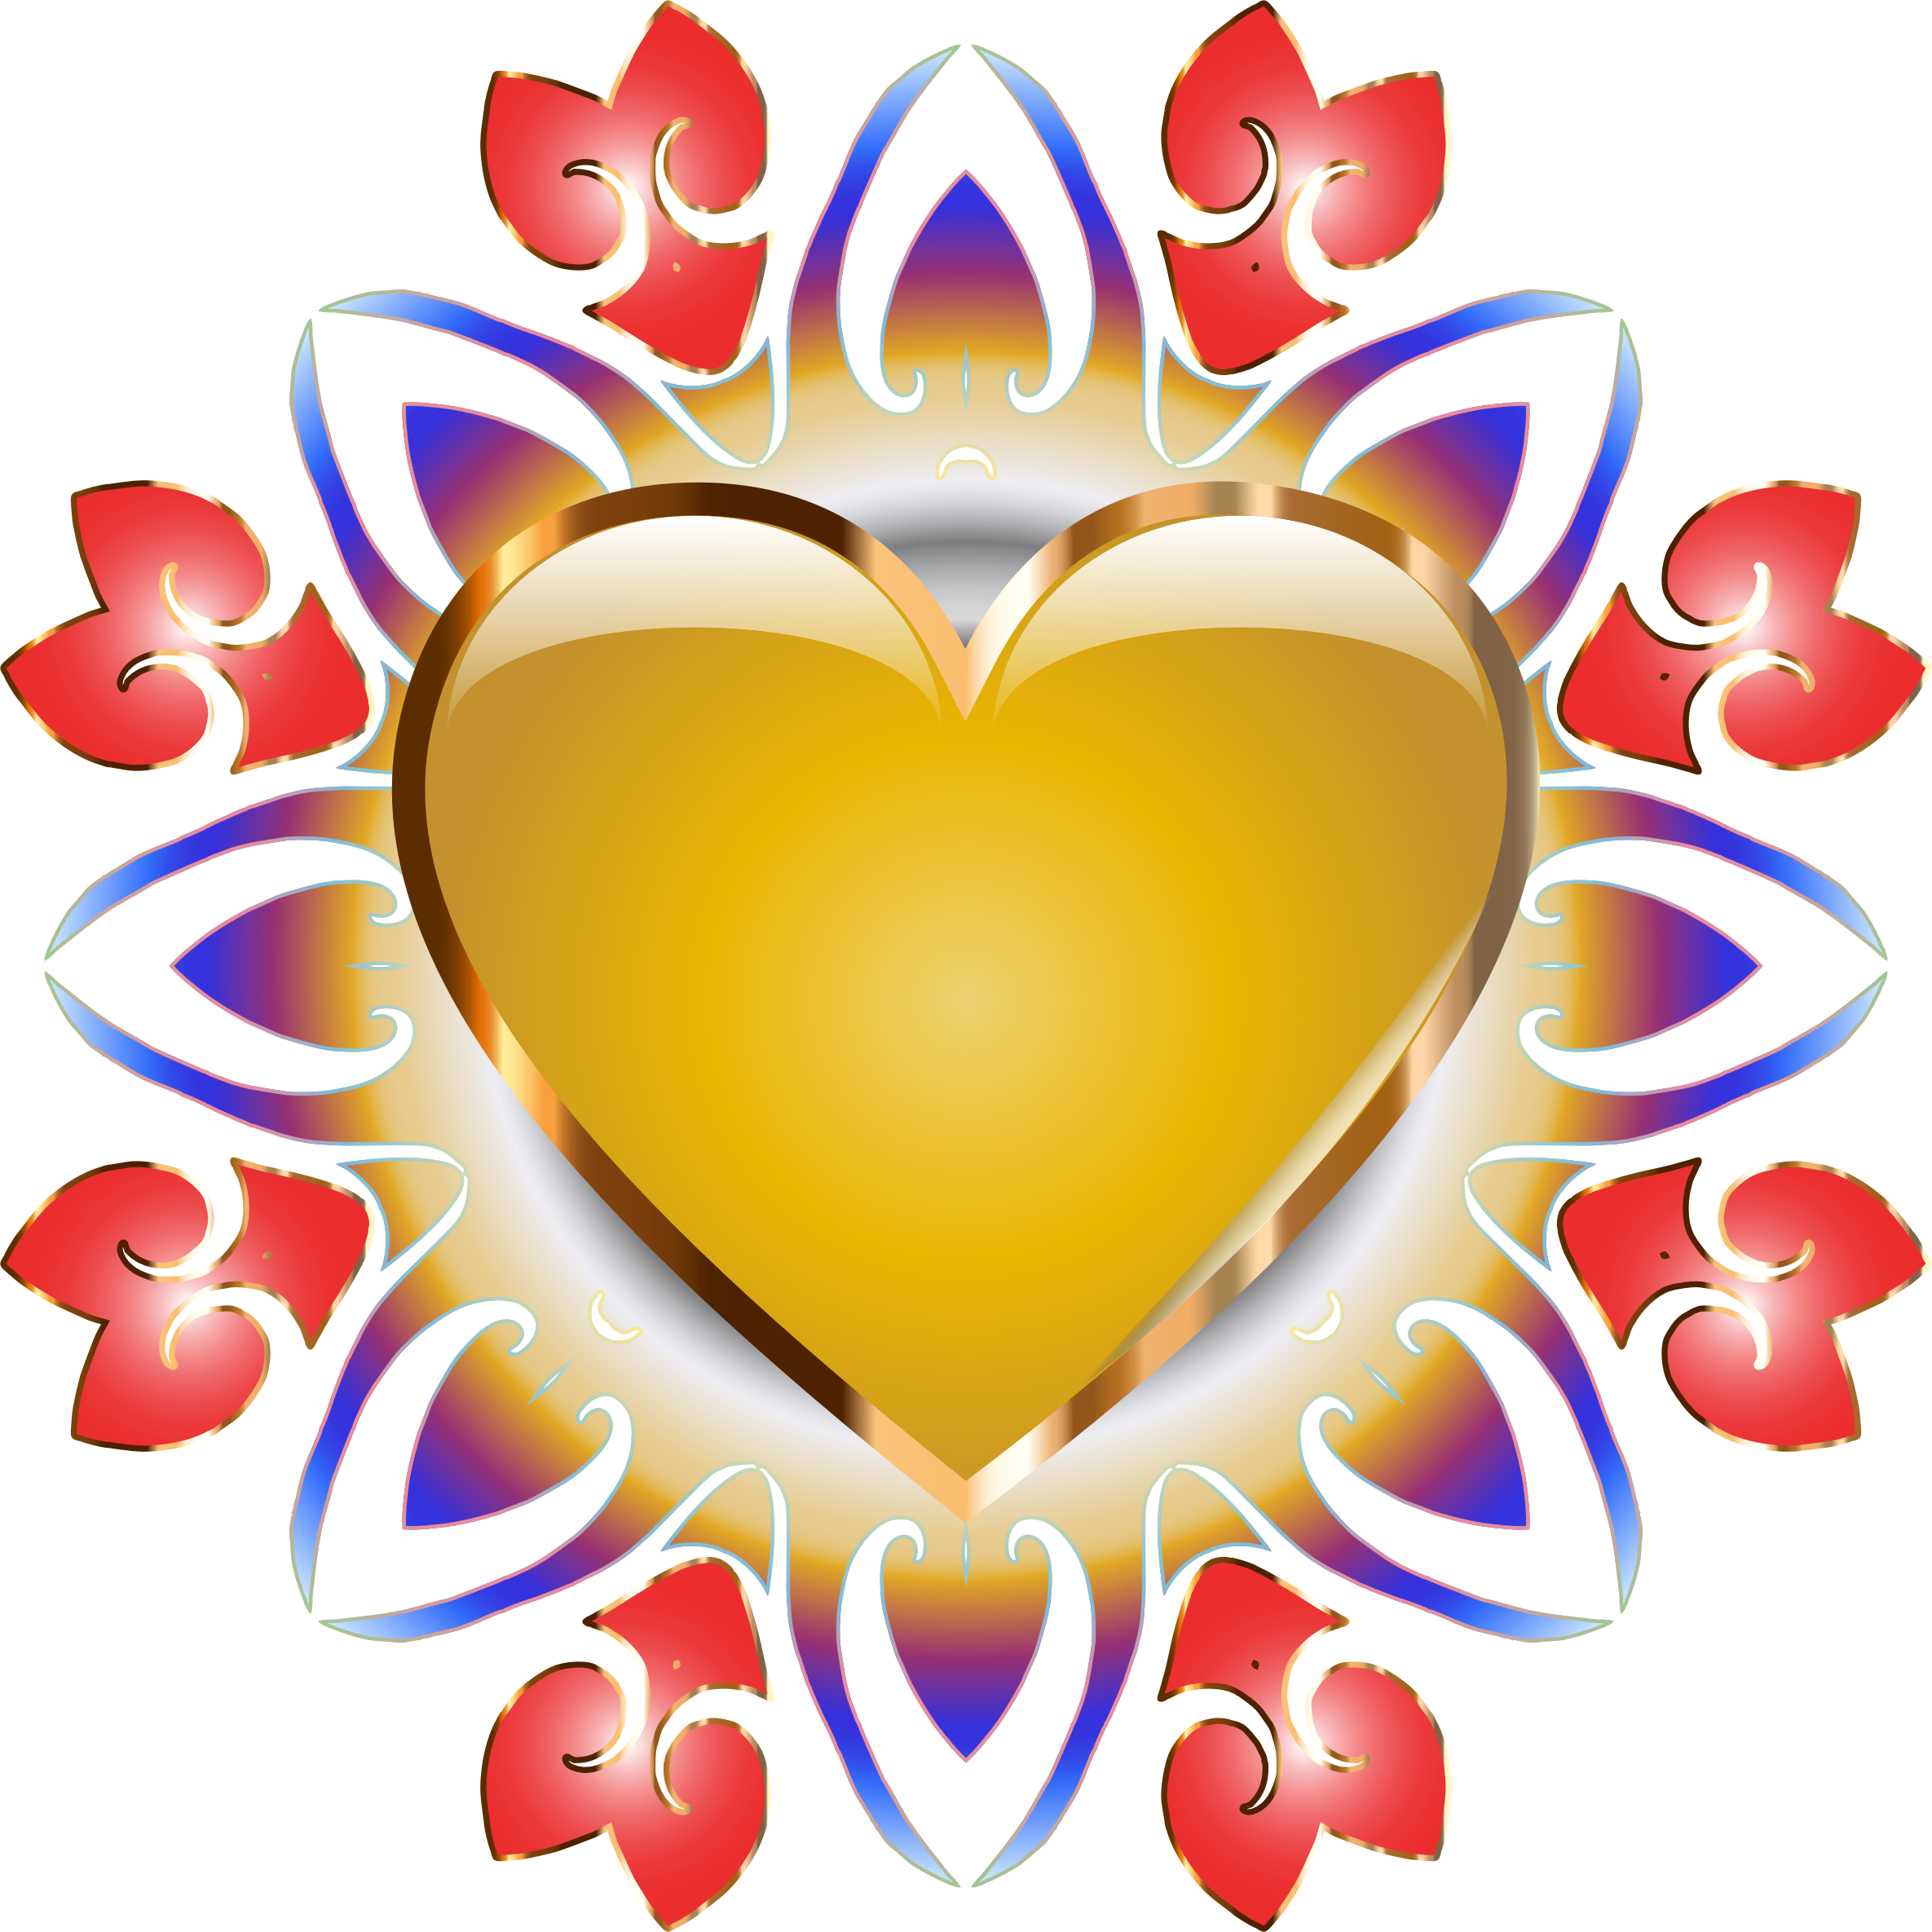 Abstract heart png. Design no background icons